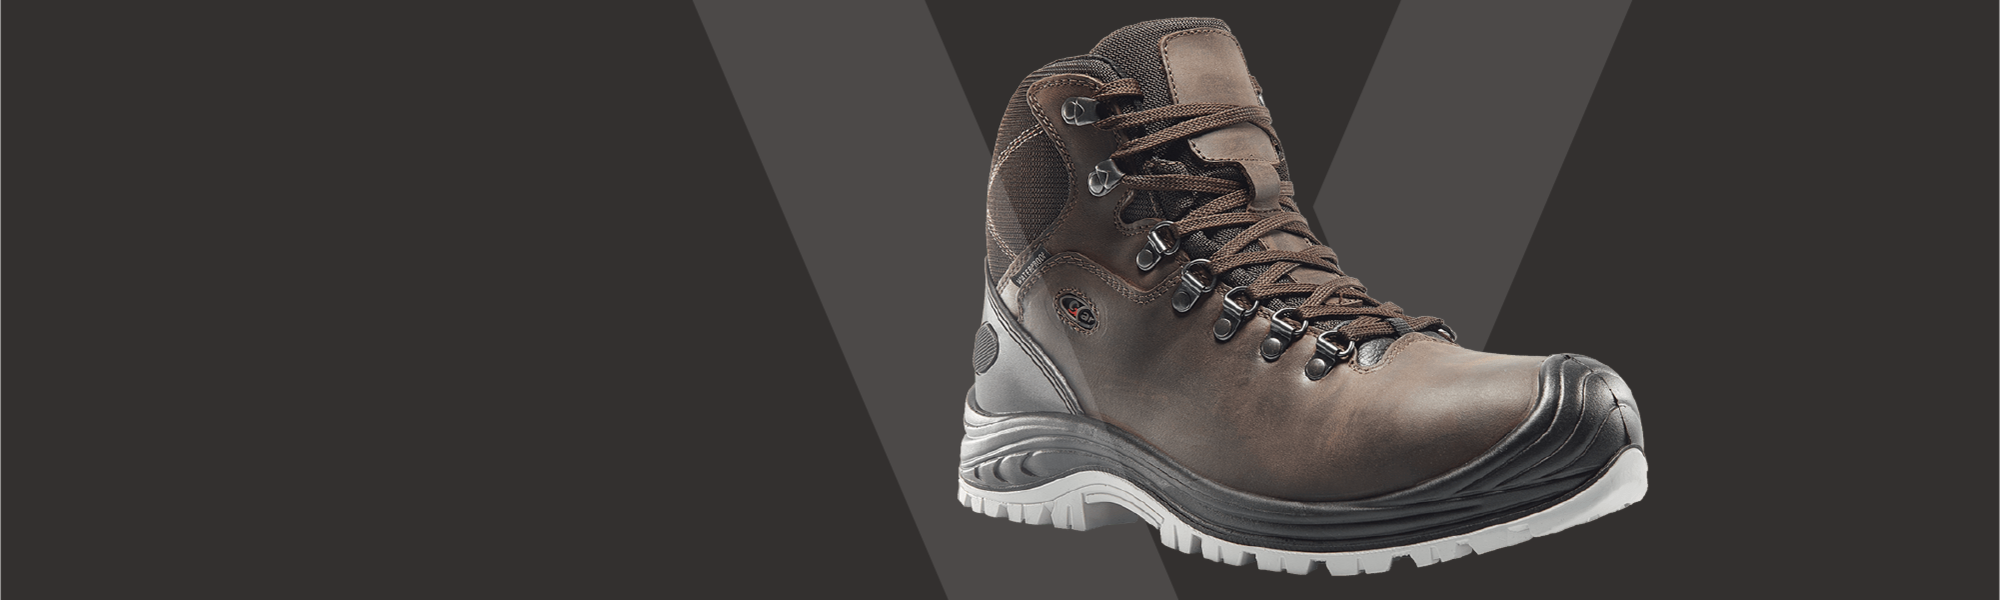 Garsport: The perfect safety mid-cut boots for the hardest and demanding jobs.